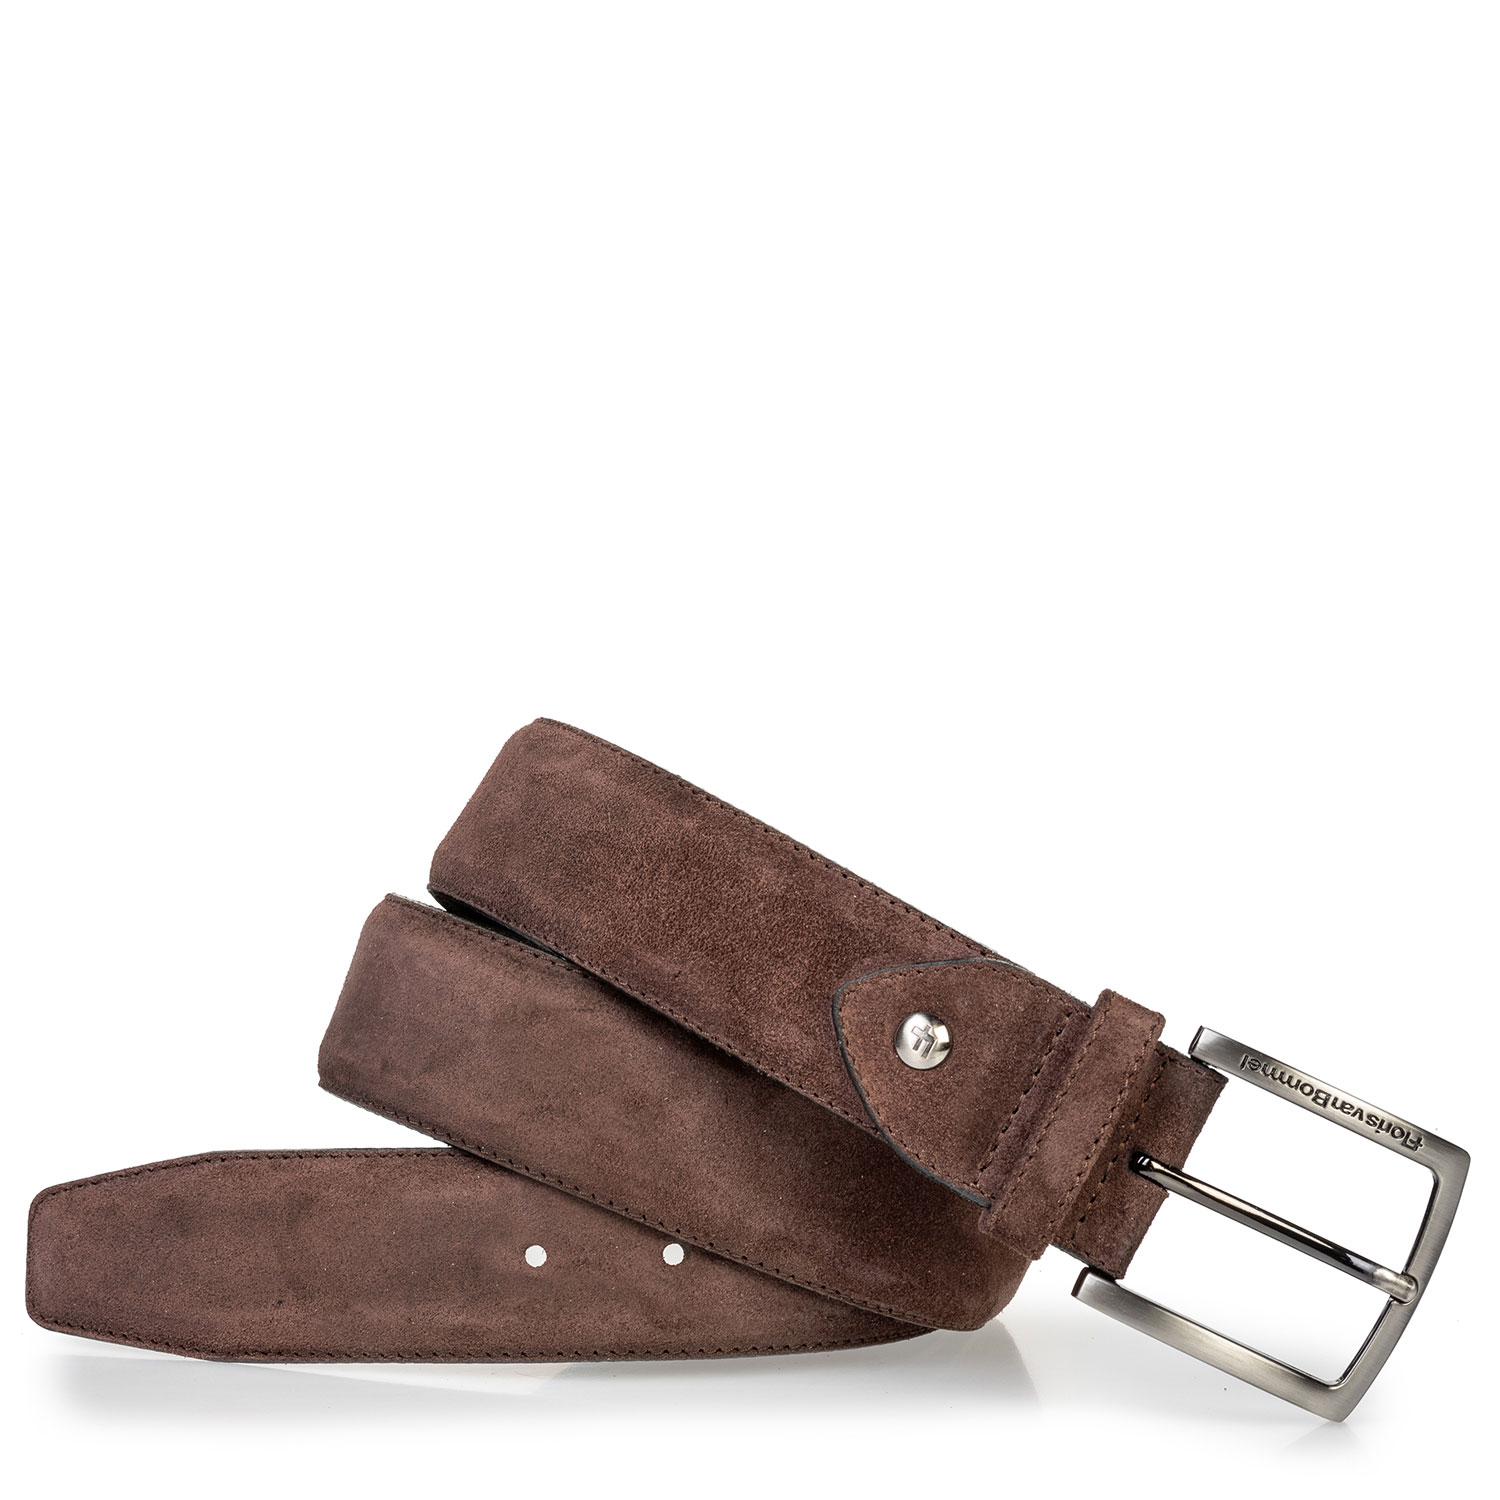 75202/97 - Suede leather belt dark brown